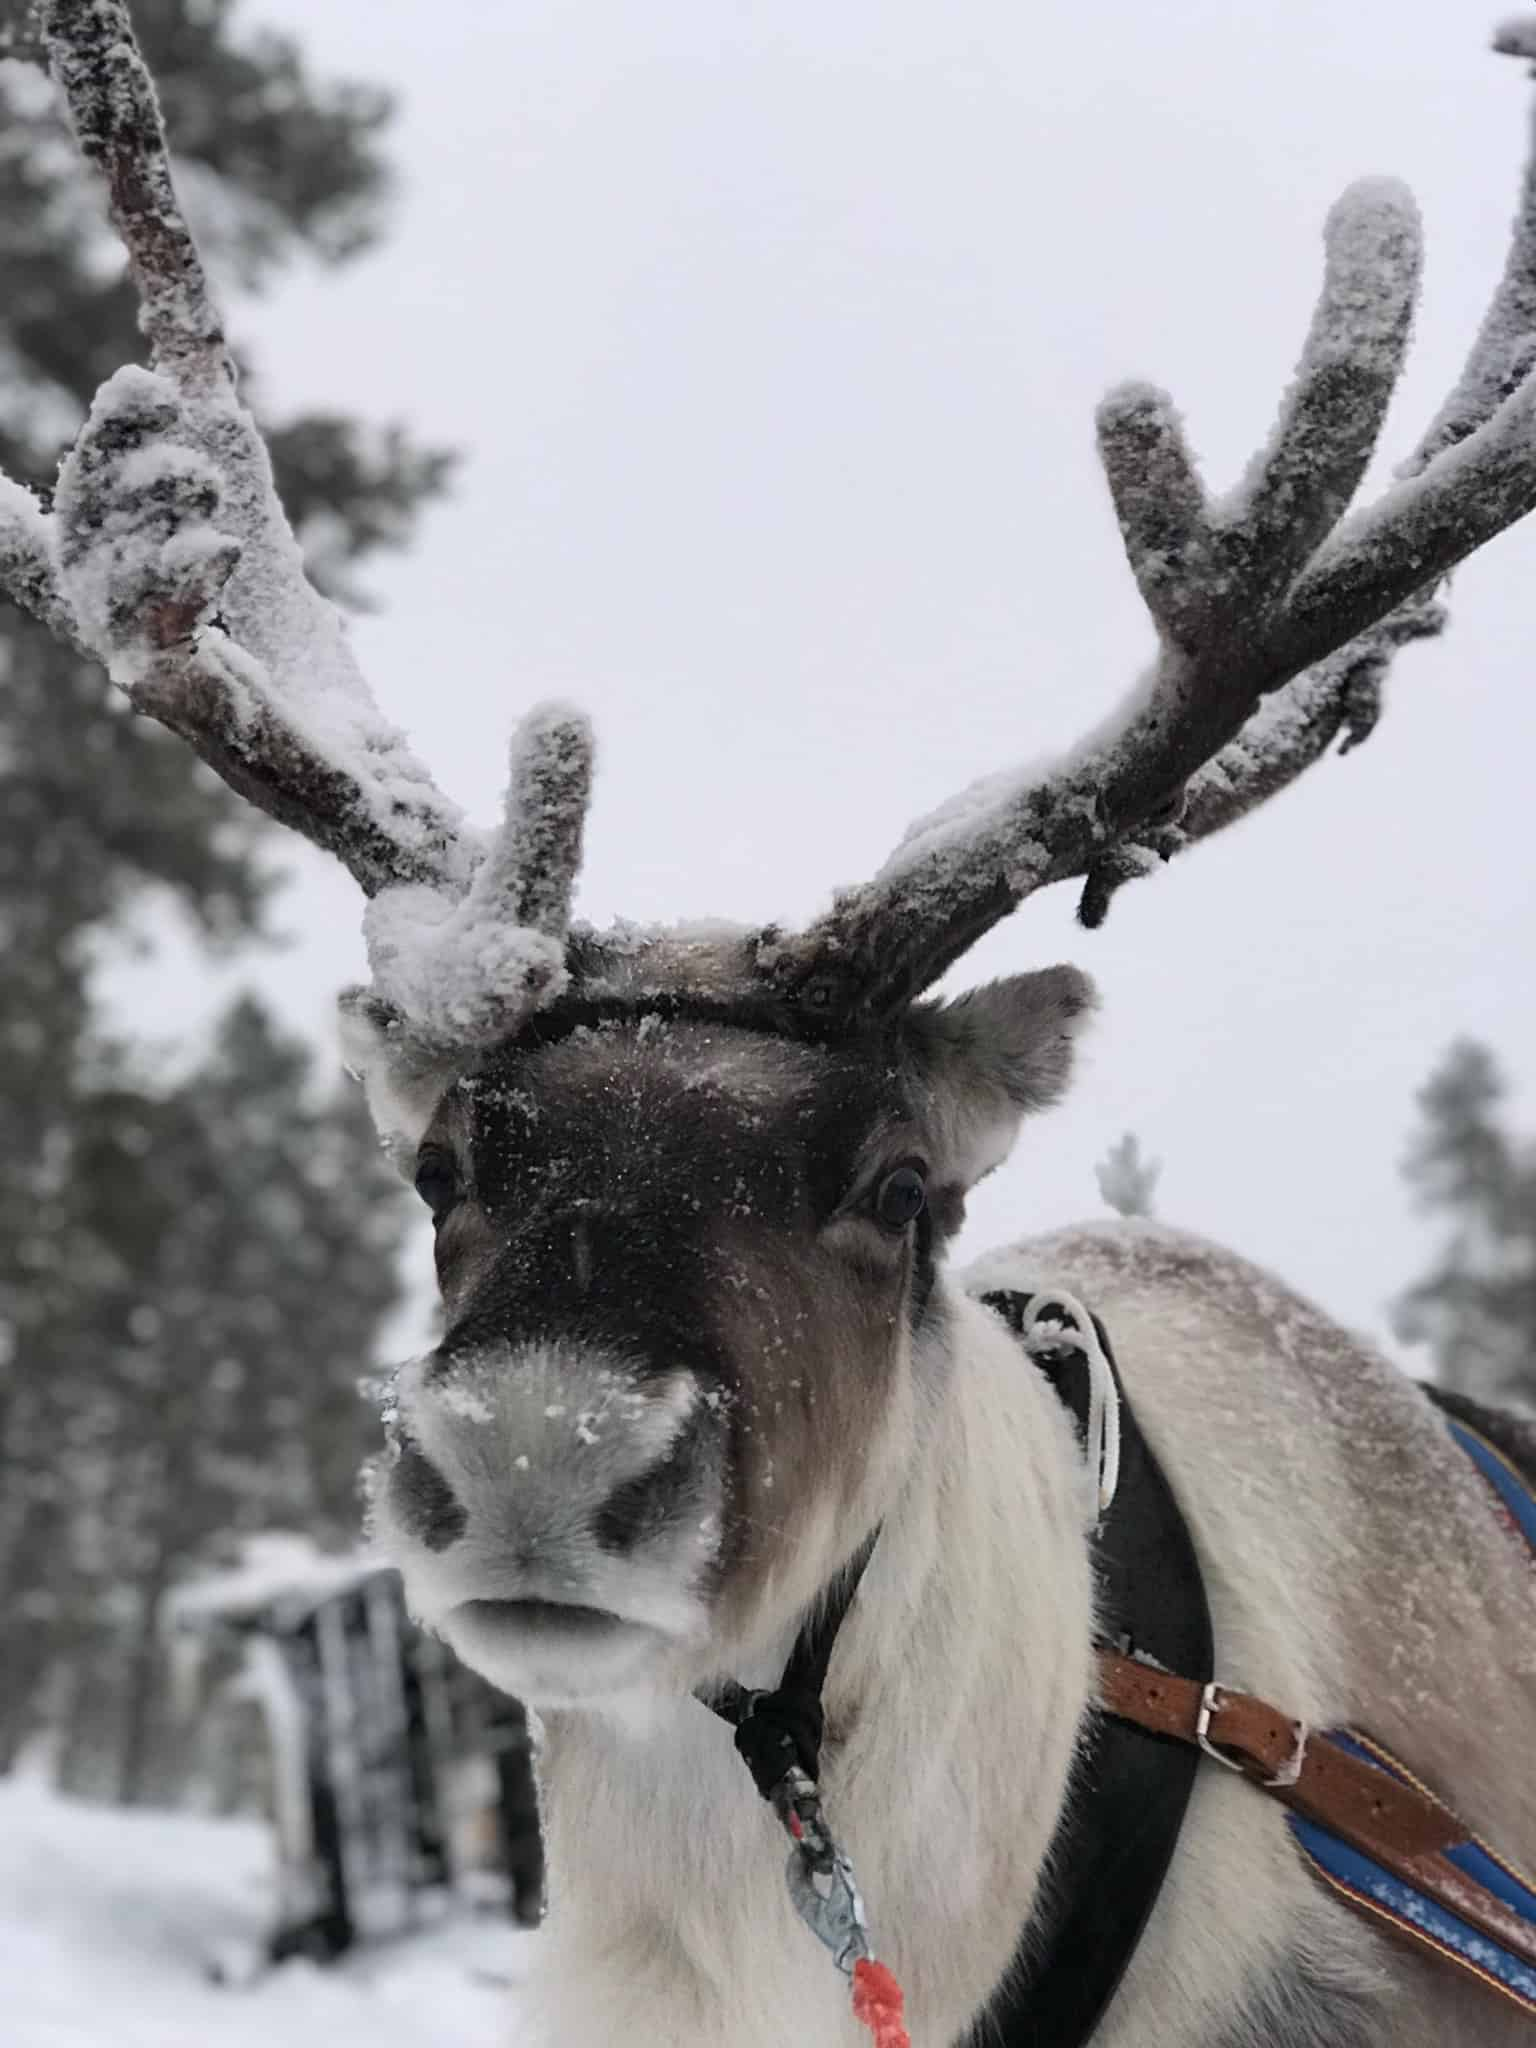 Searching for Santa at Santa's Lapland